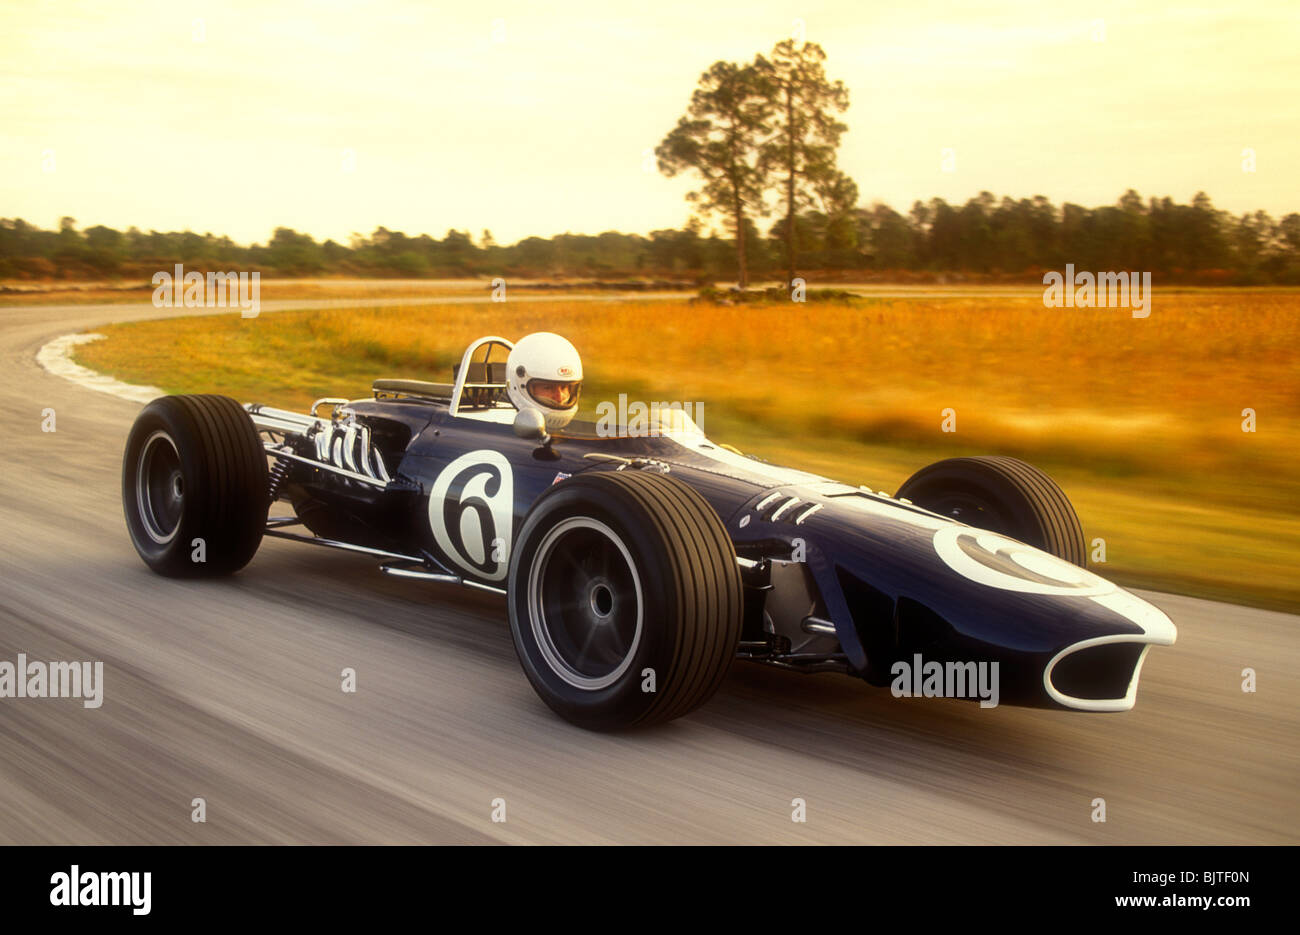 American Racing Car Stock Photos & American Racing Car Stock ...